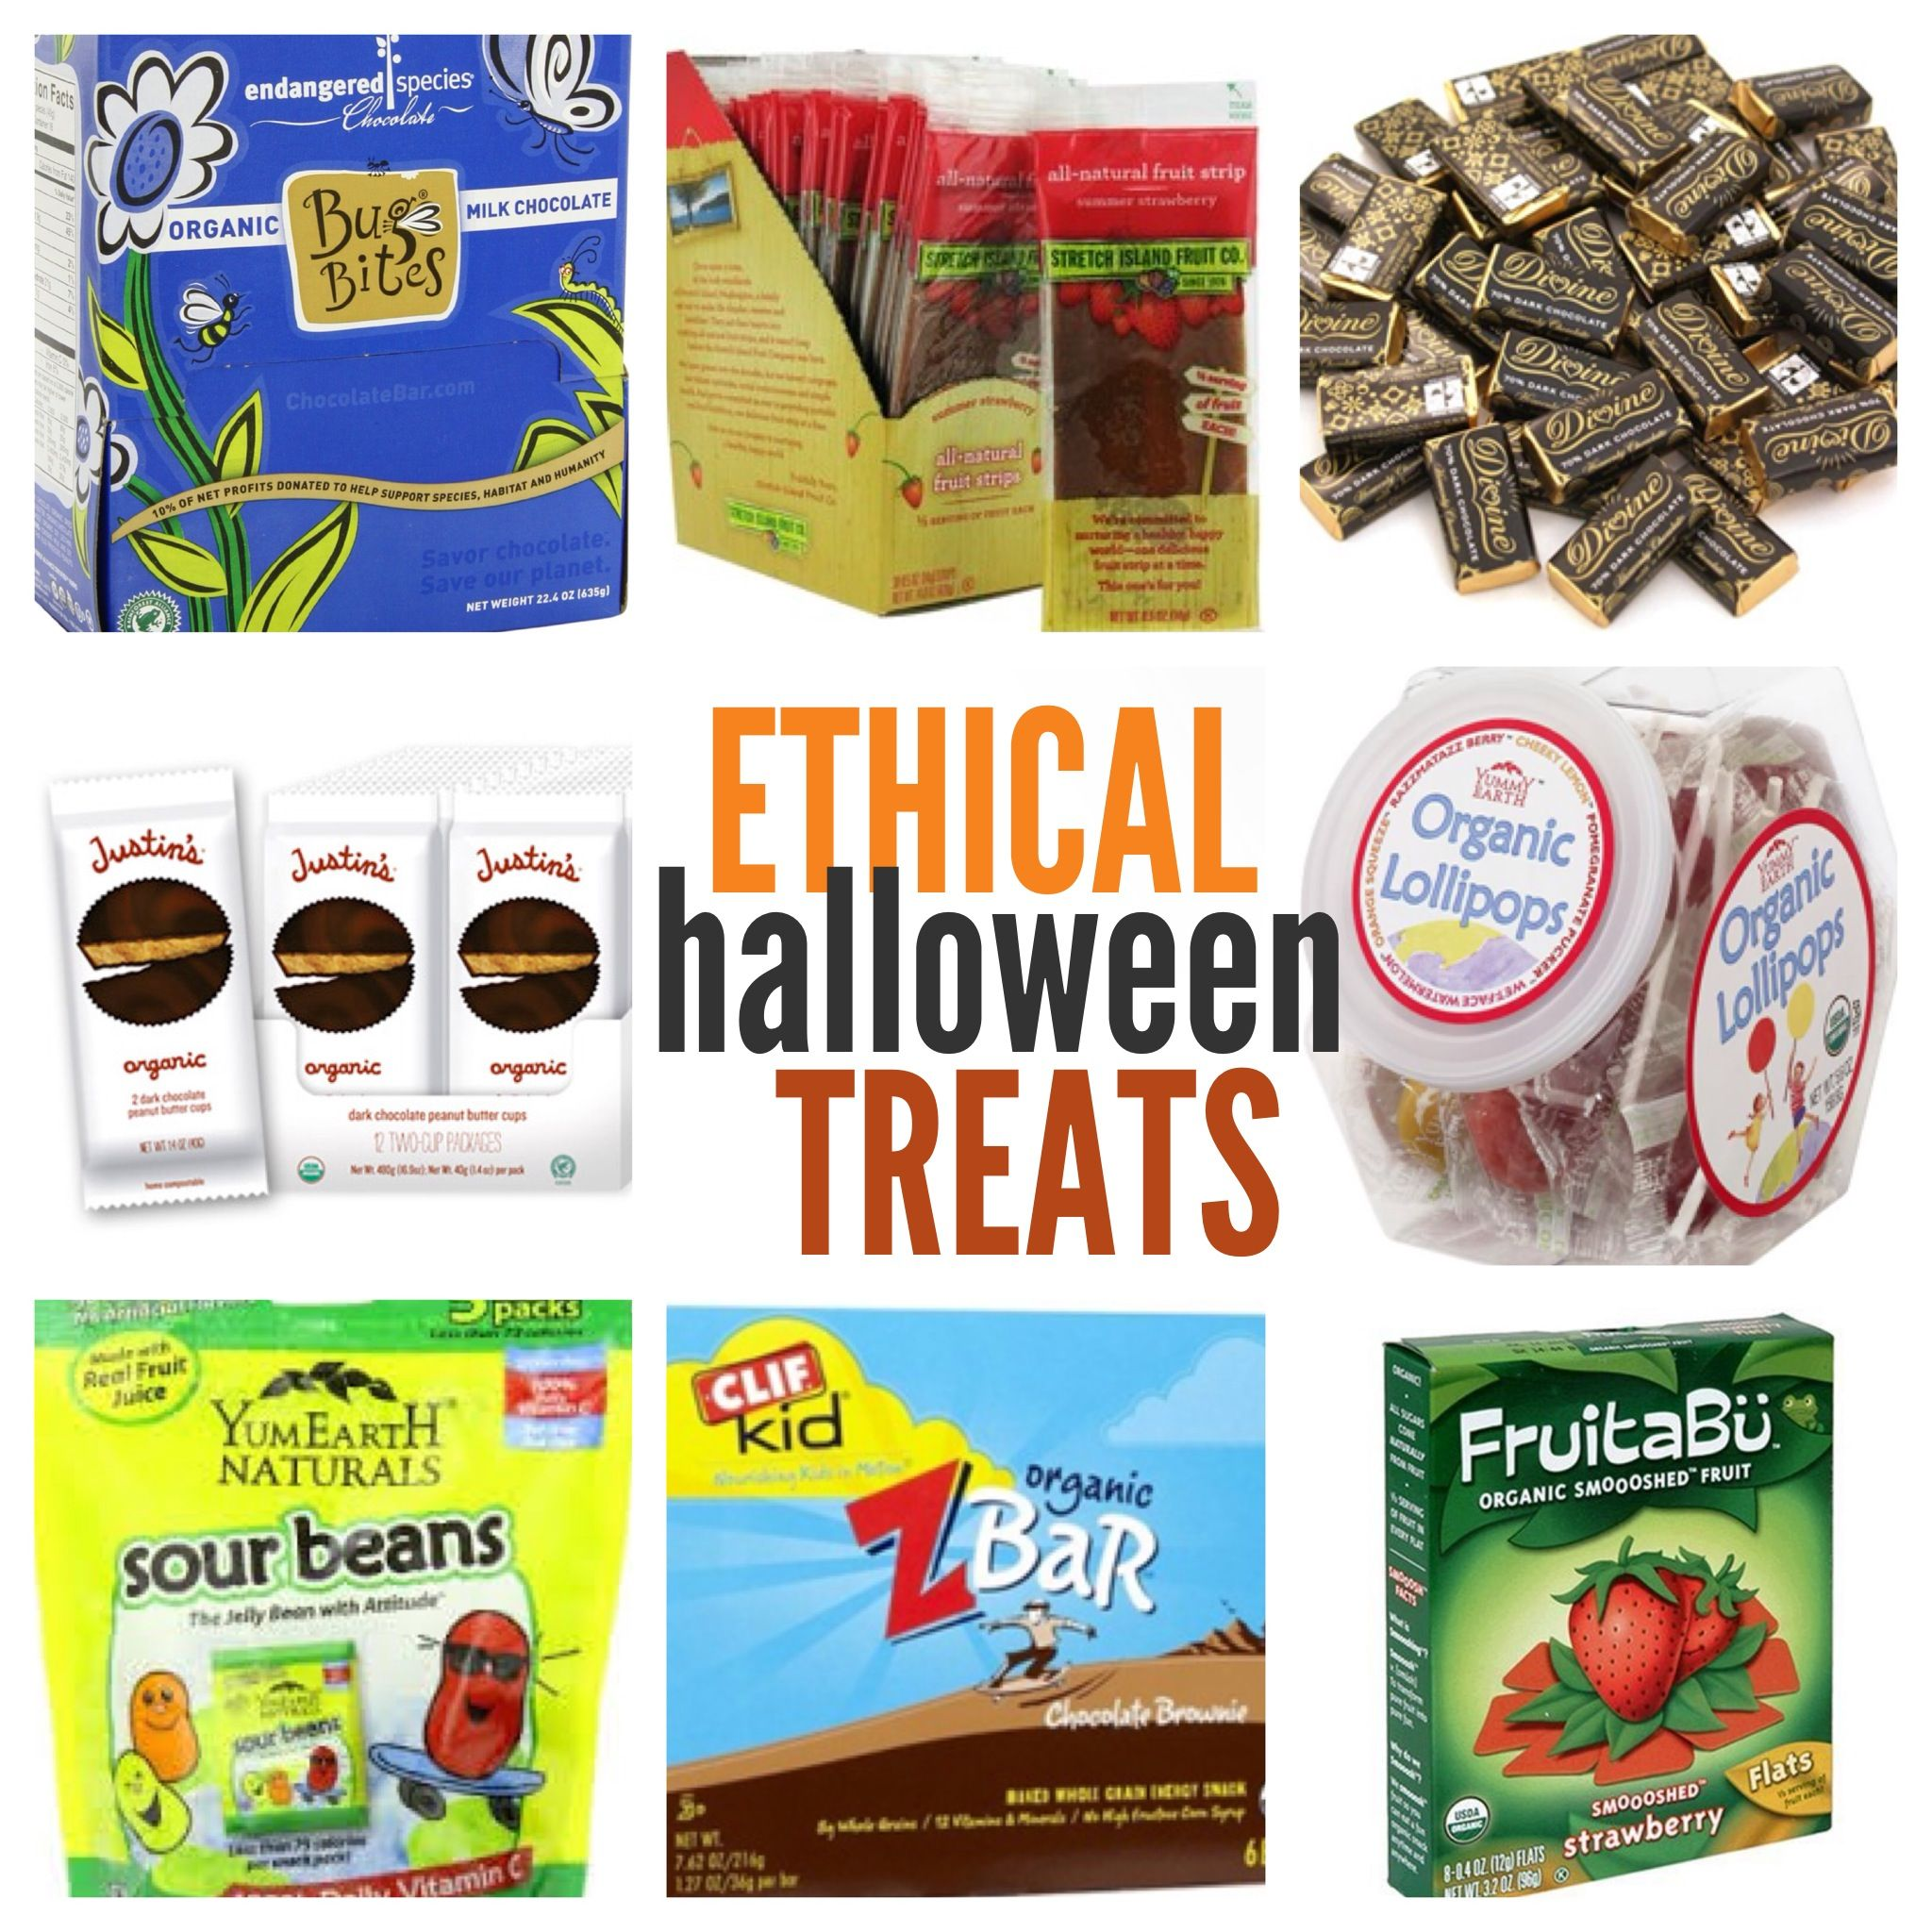 ethical fair trade candy ideas for halloween fair trade fair trade chocolate halloween. Black Bedroom Furniture Sets. Home Design Ideas